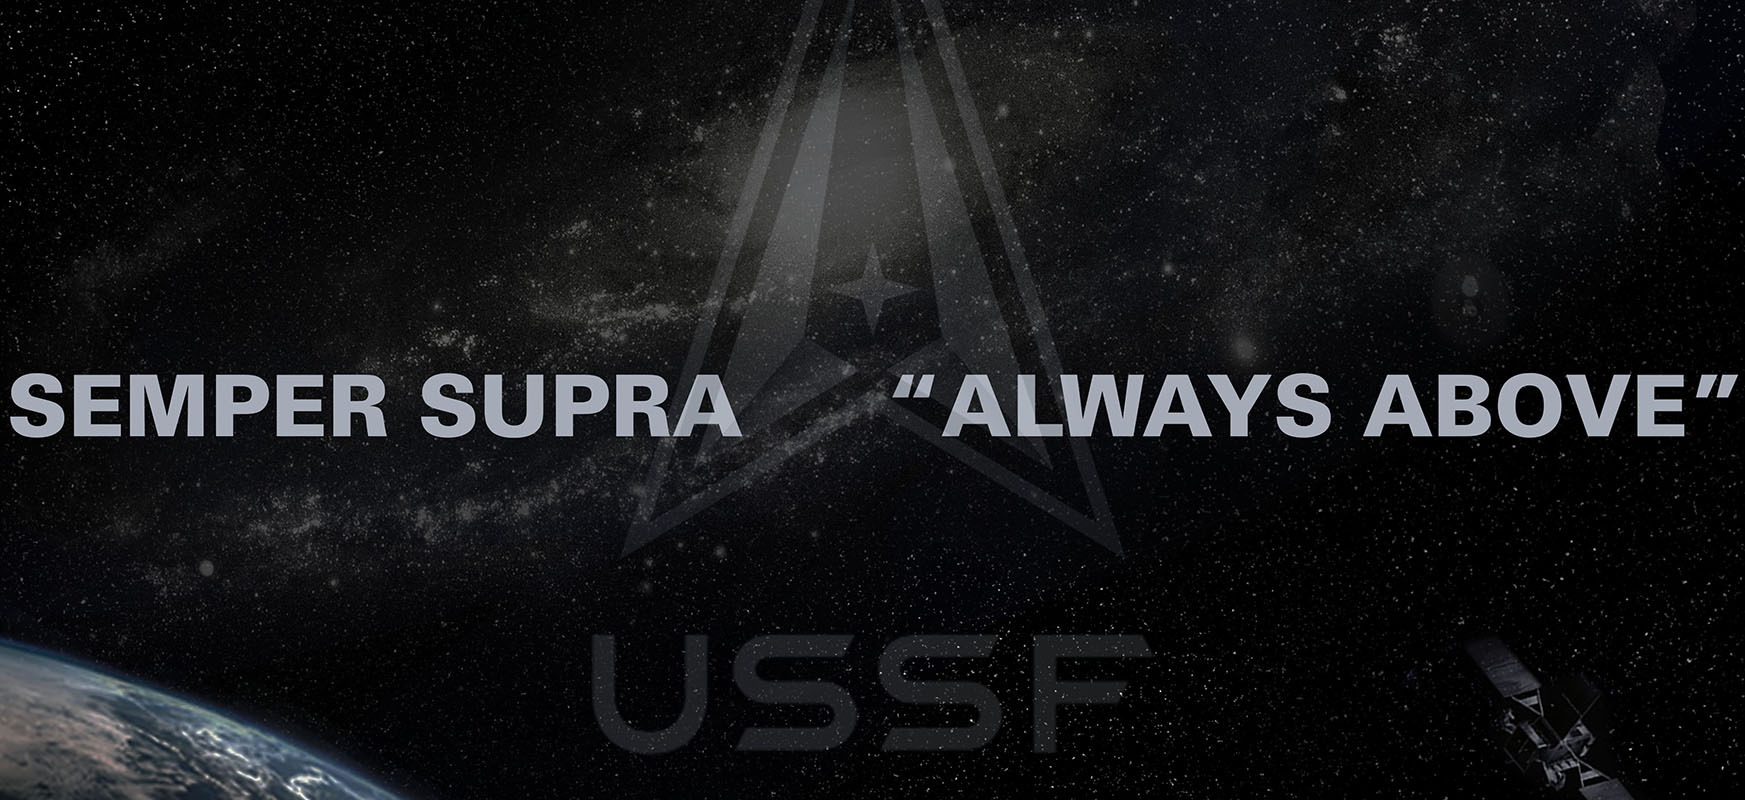 space forces logo